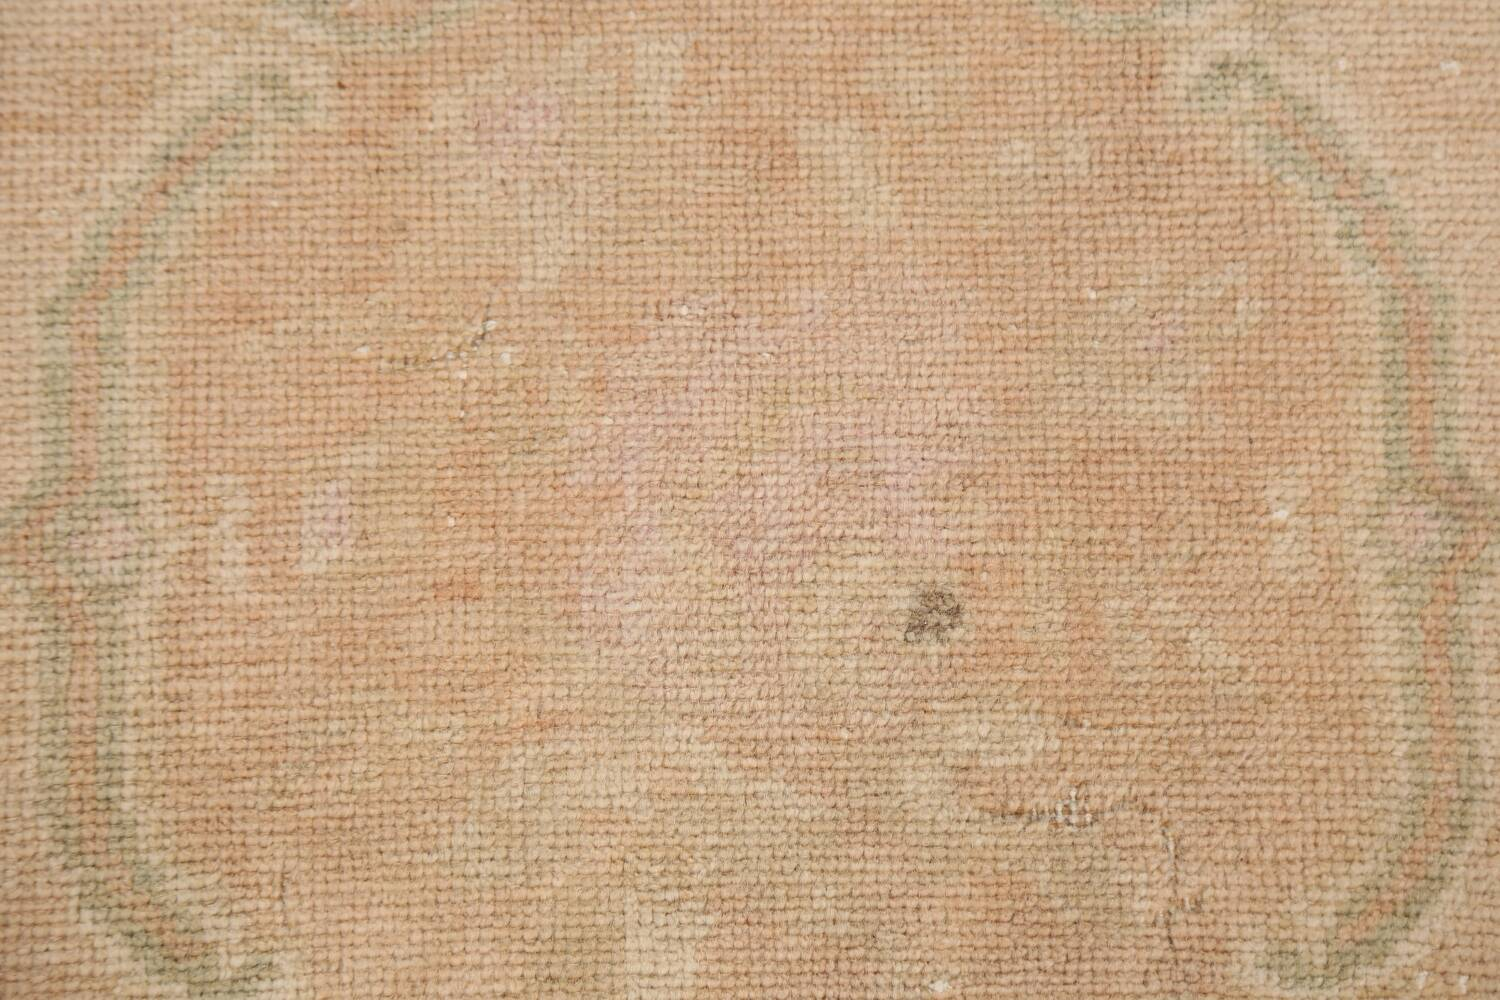 Muted Pale Orange Anatolian Turkish Area Rug 2x3 image 4